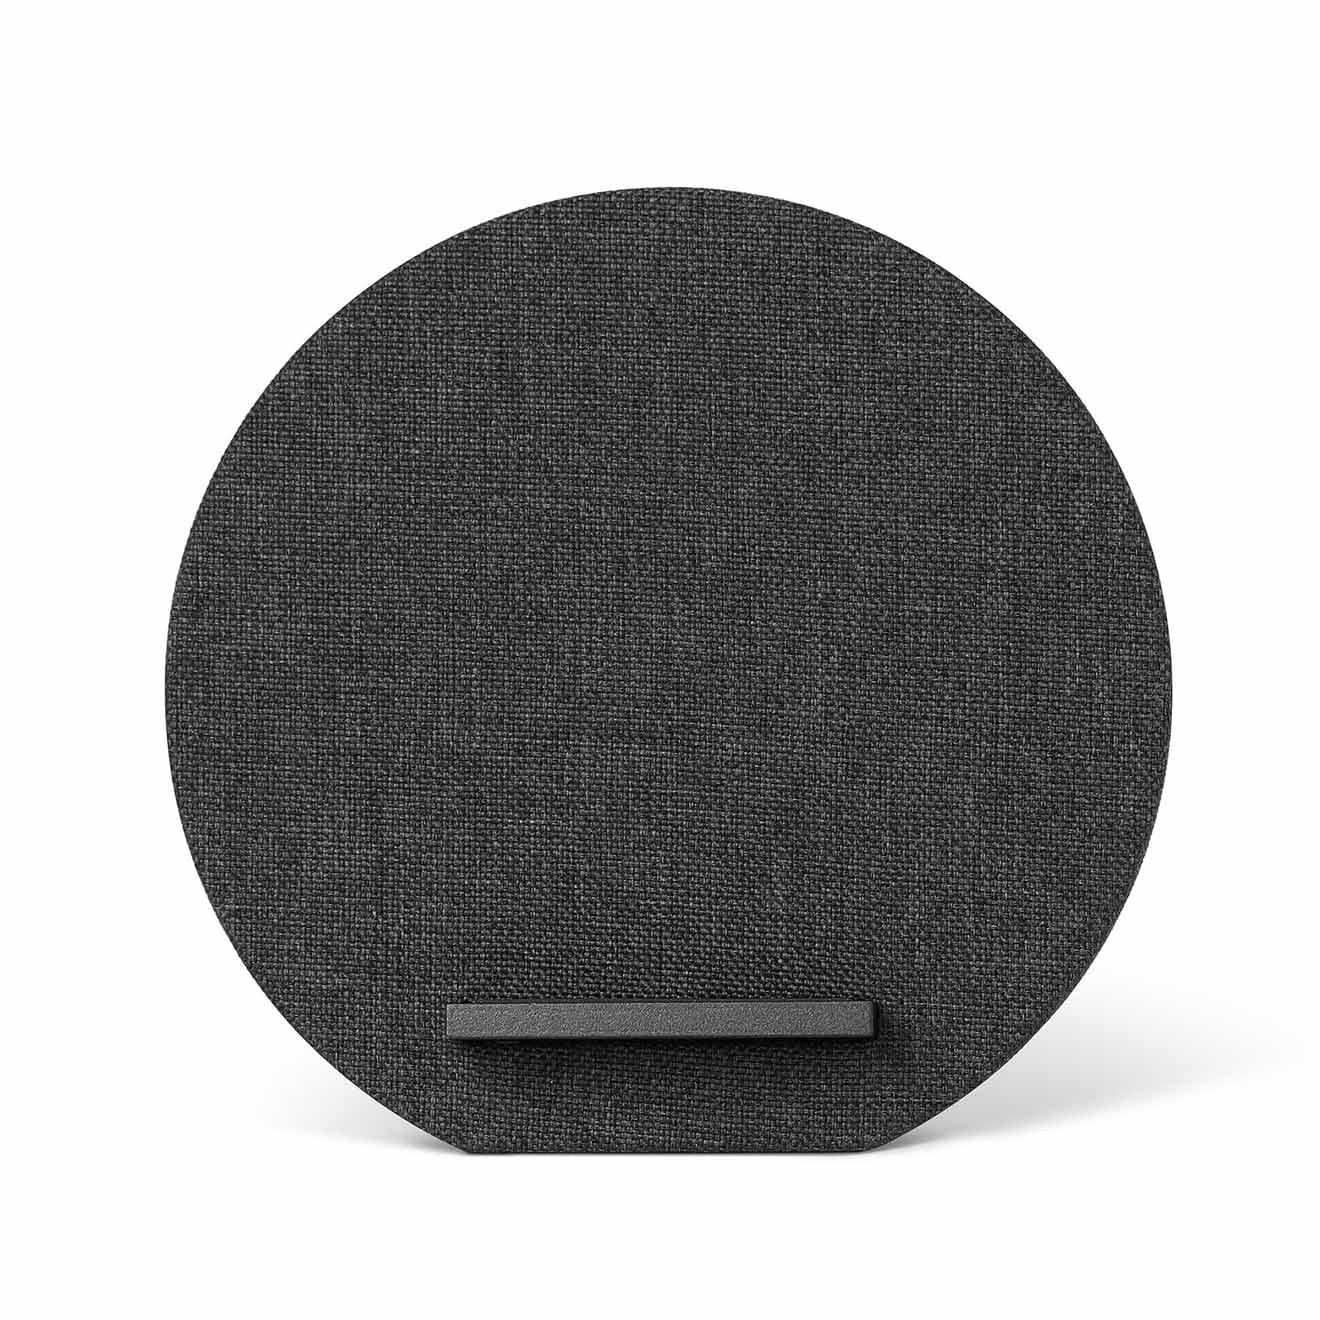 Native Union Dock Wireless Charger Slate Fabric